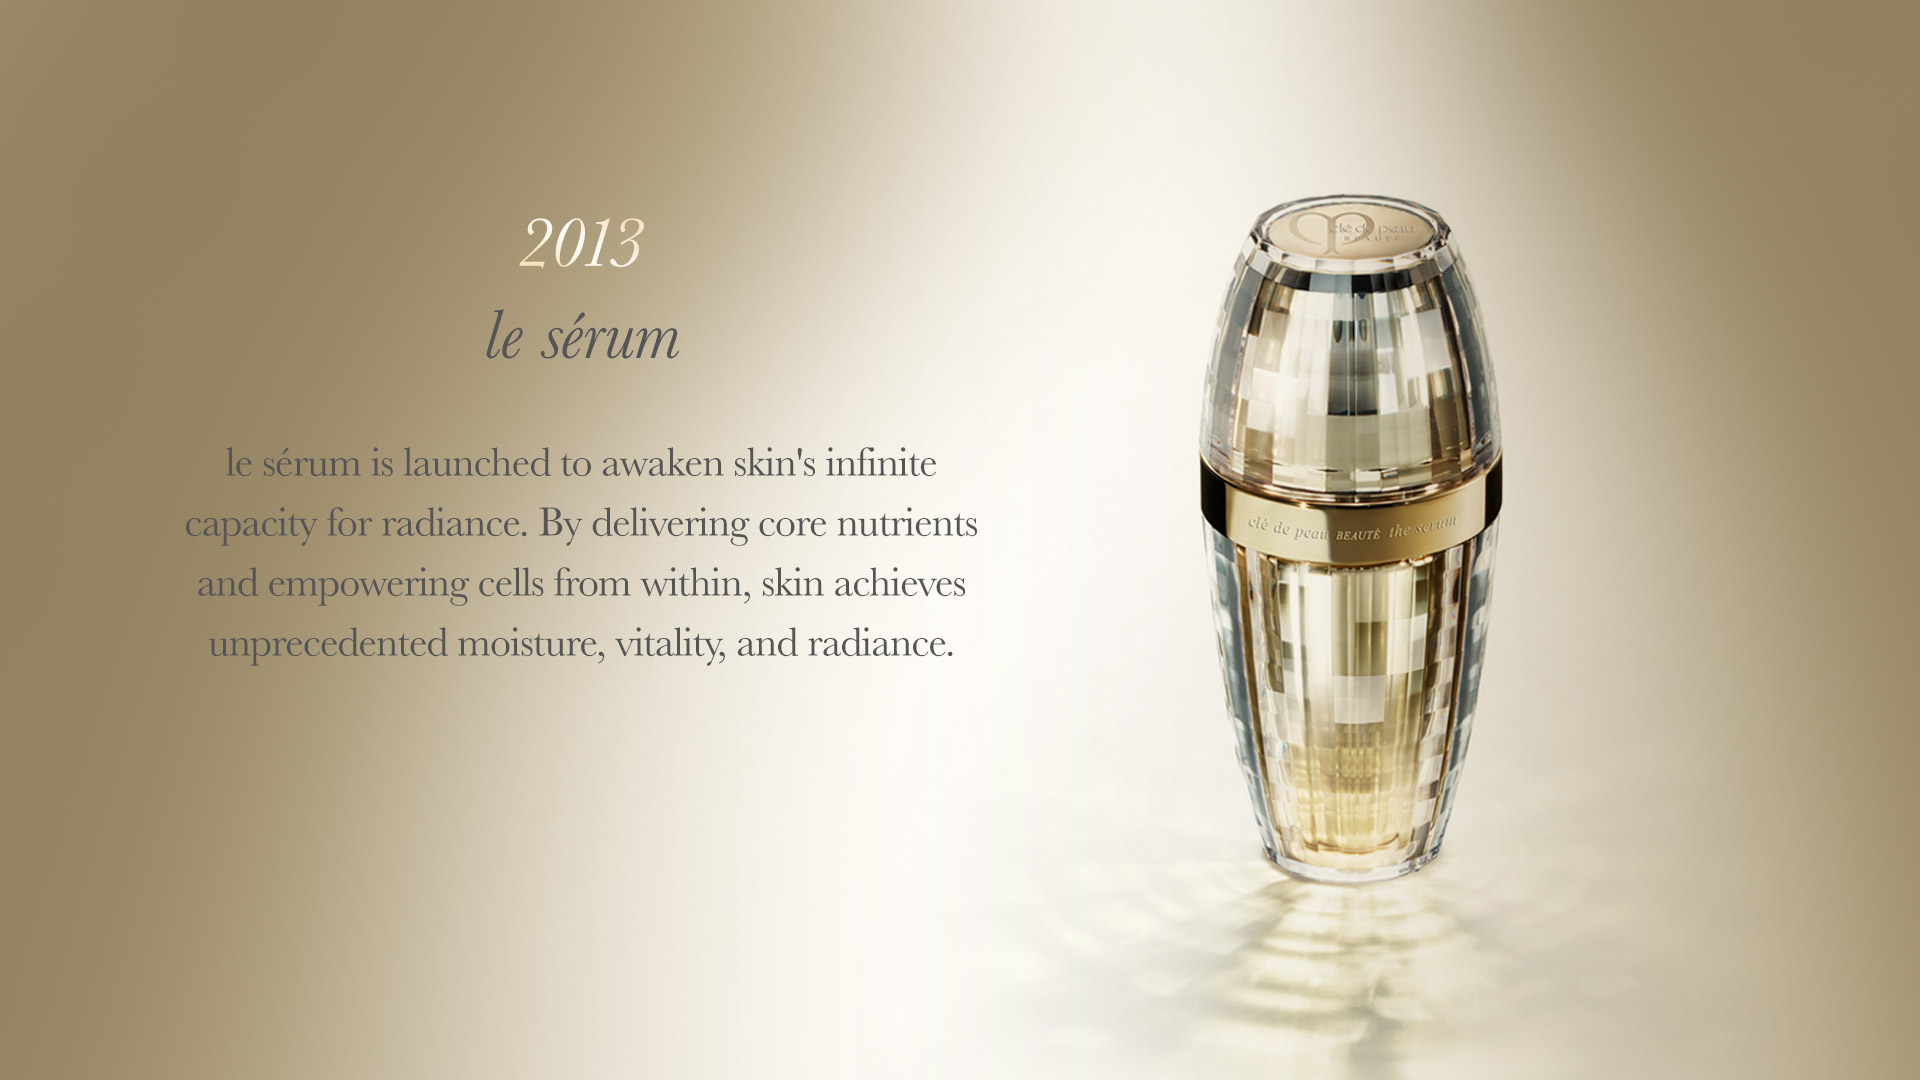 Le Sérum is launched to awaken skin's infinite capacity for radiance. By delivering core nutrients and empowering cells from within, skin achieves unprecedented moisture, vitality and radiance.